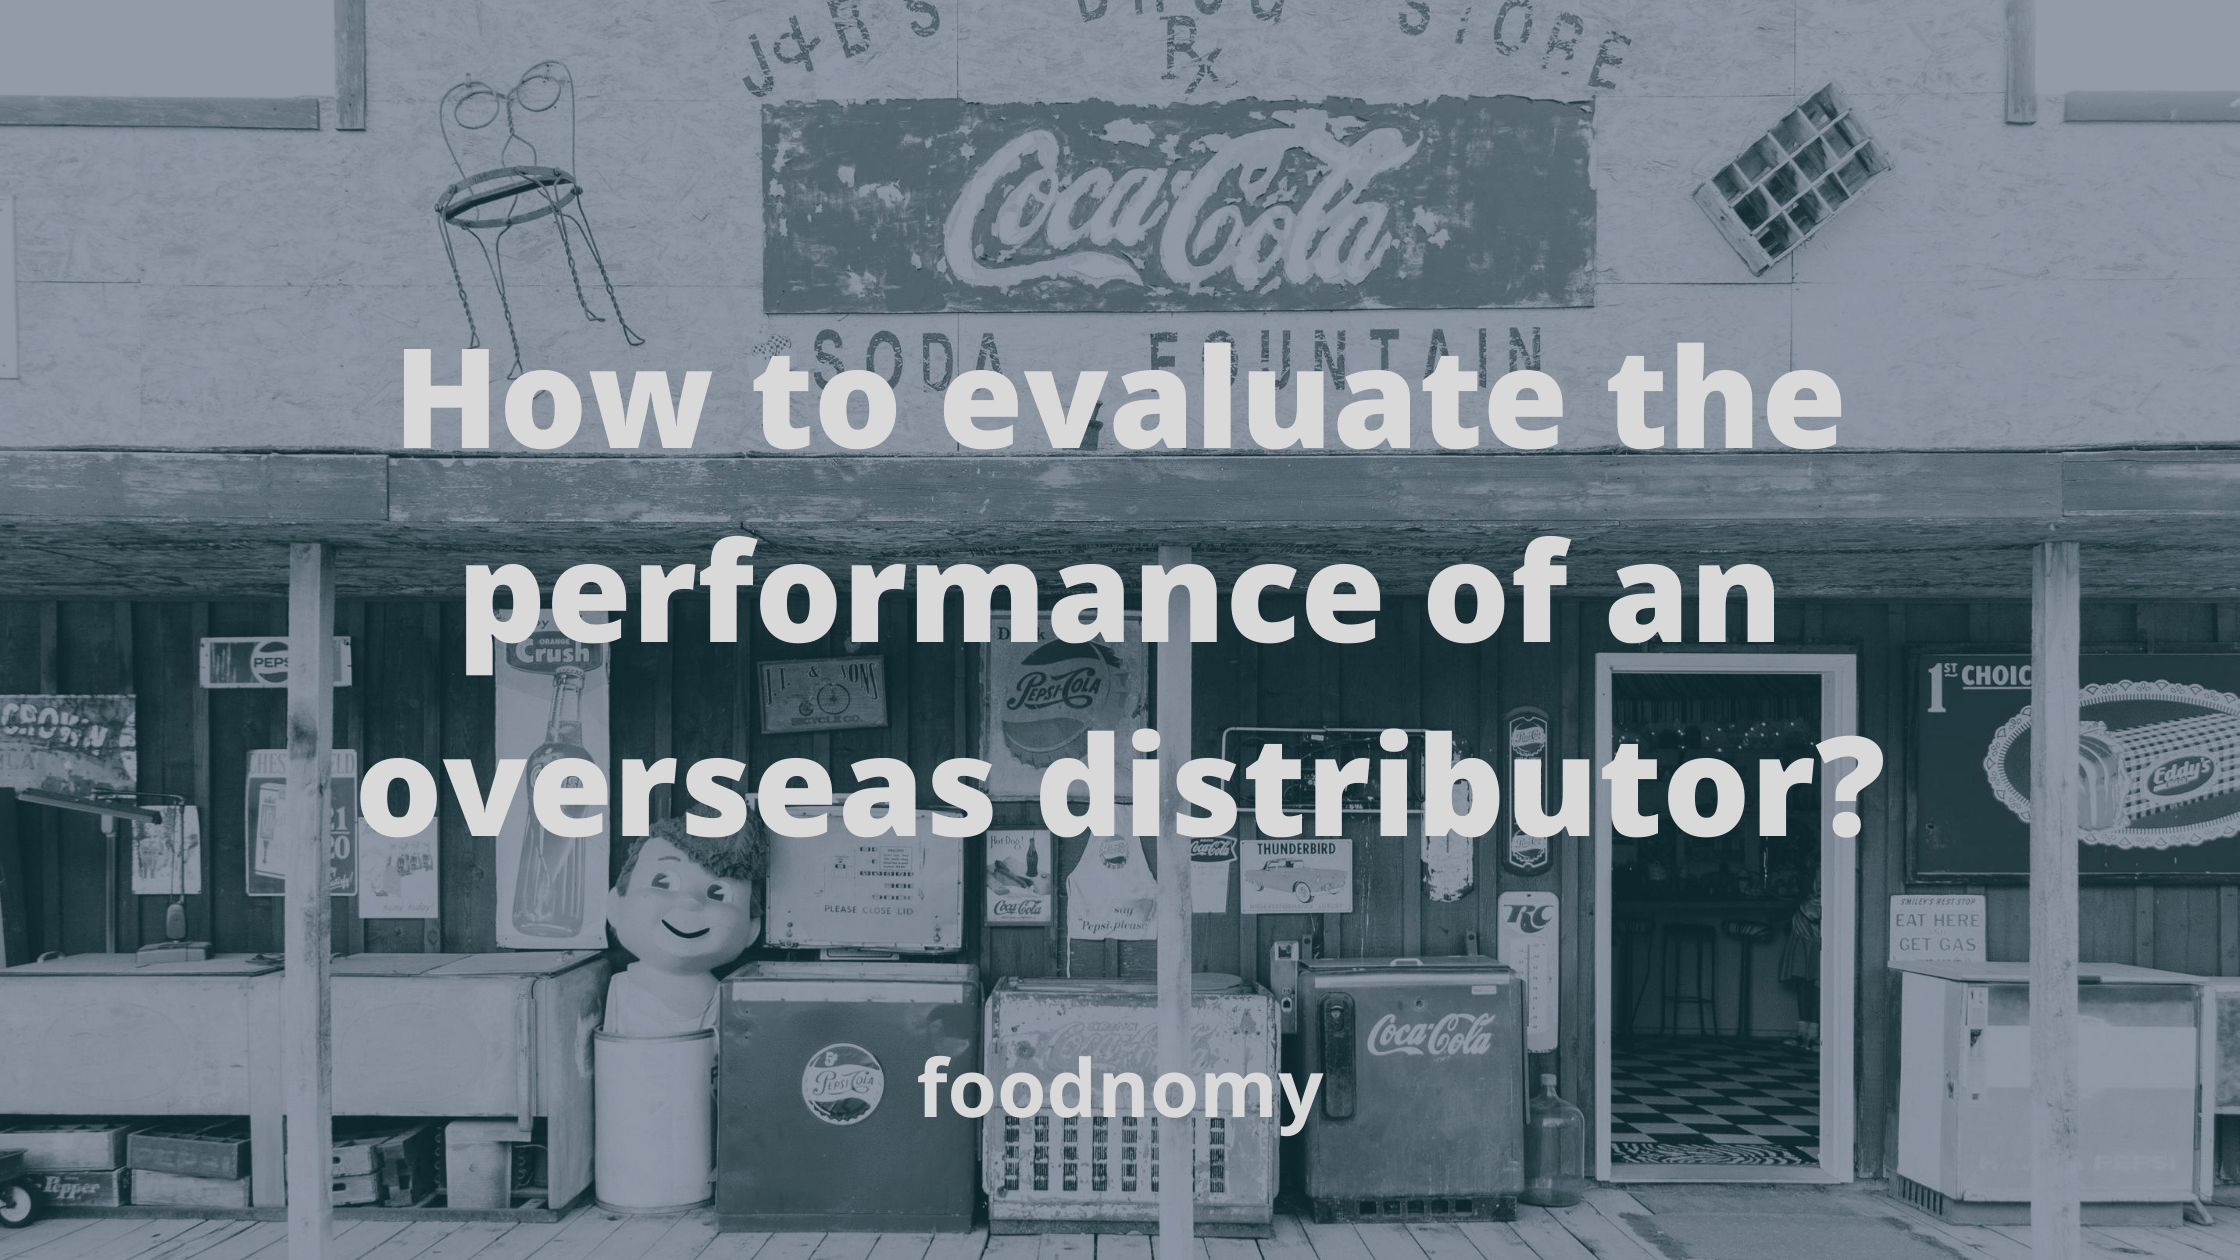 How to evaluate the performance of an overseas distributor?